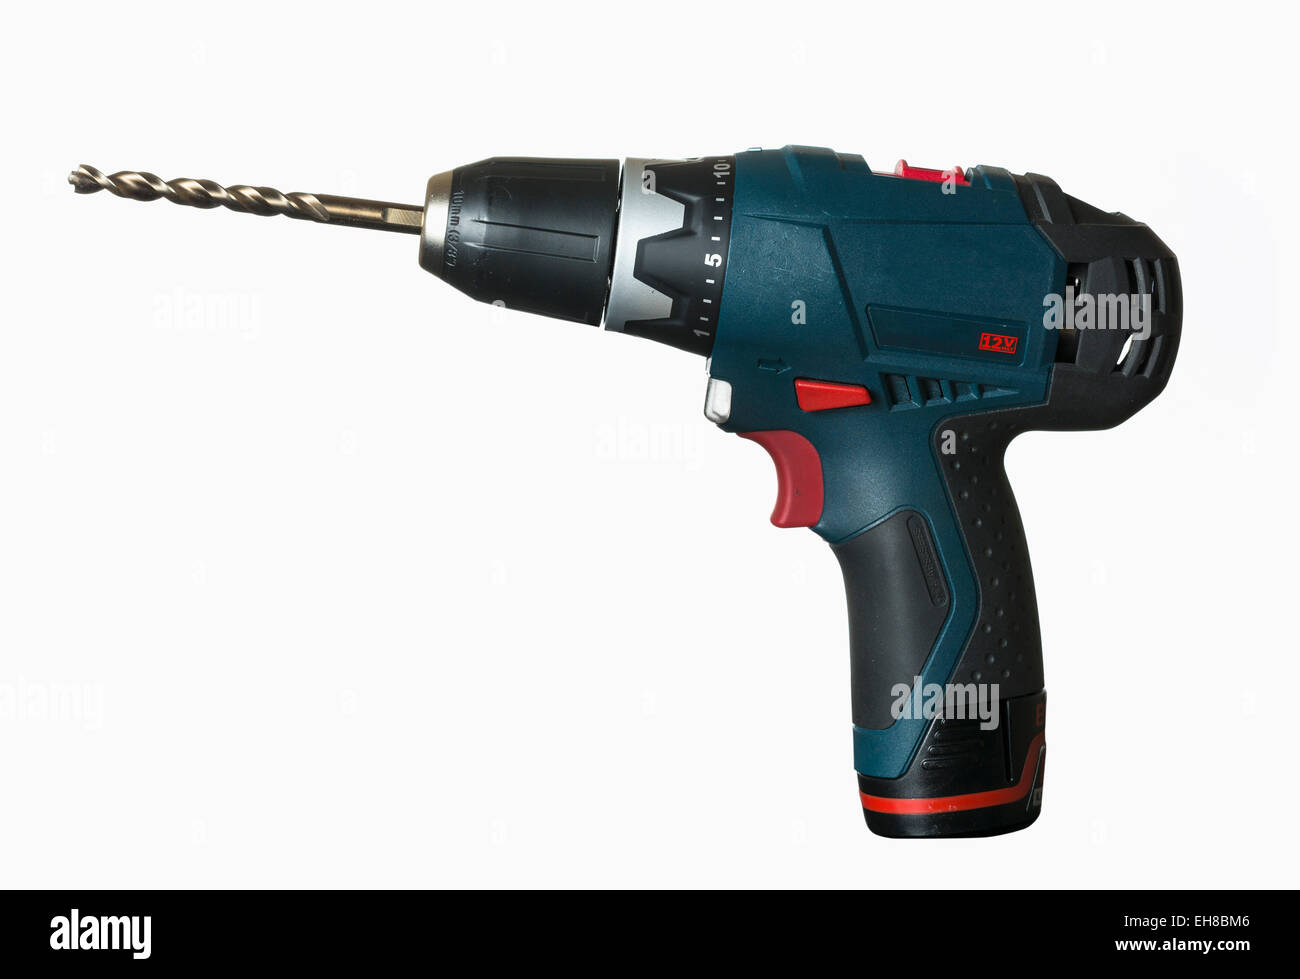 Cordless drill with large bit on white background - Stock Image